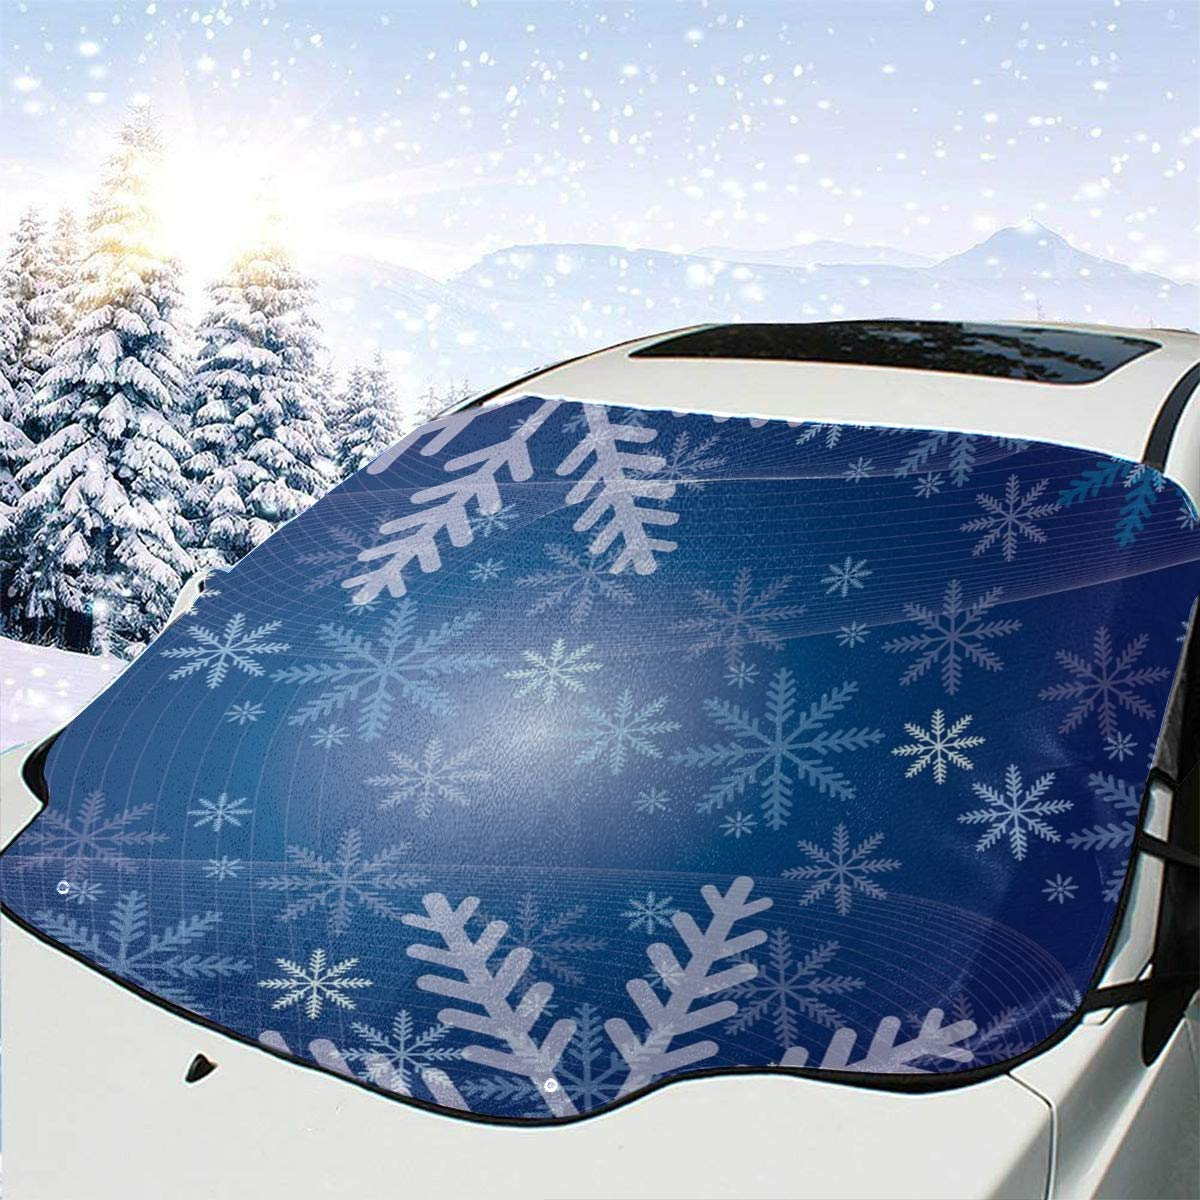 Huqalh Windshield Cover for Car Snowflakes Blue Snowy Holiday Winter Shade for Car Window 57.9x46.5 Inch(147cmx118cm) for Most Vehicles by Protect The Windshield and Wiper from Sun,ice,Snow,Frost